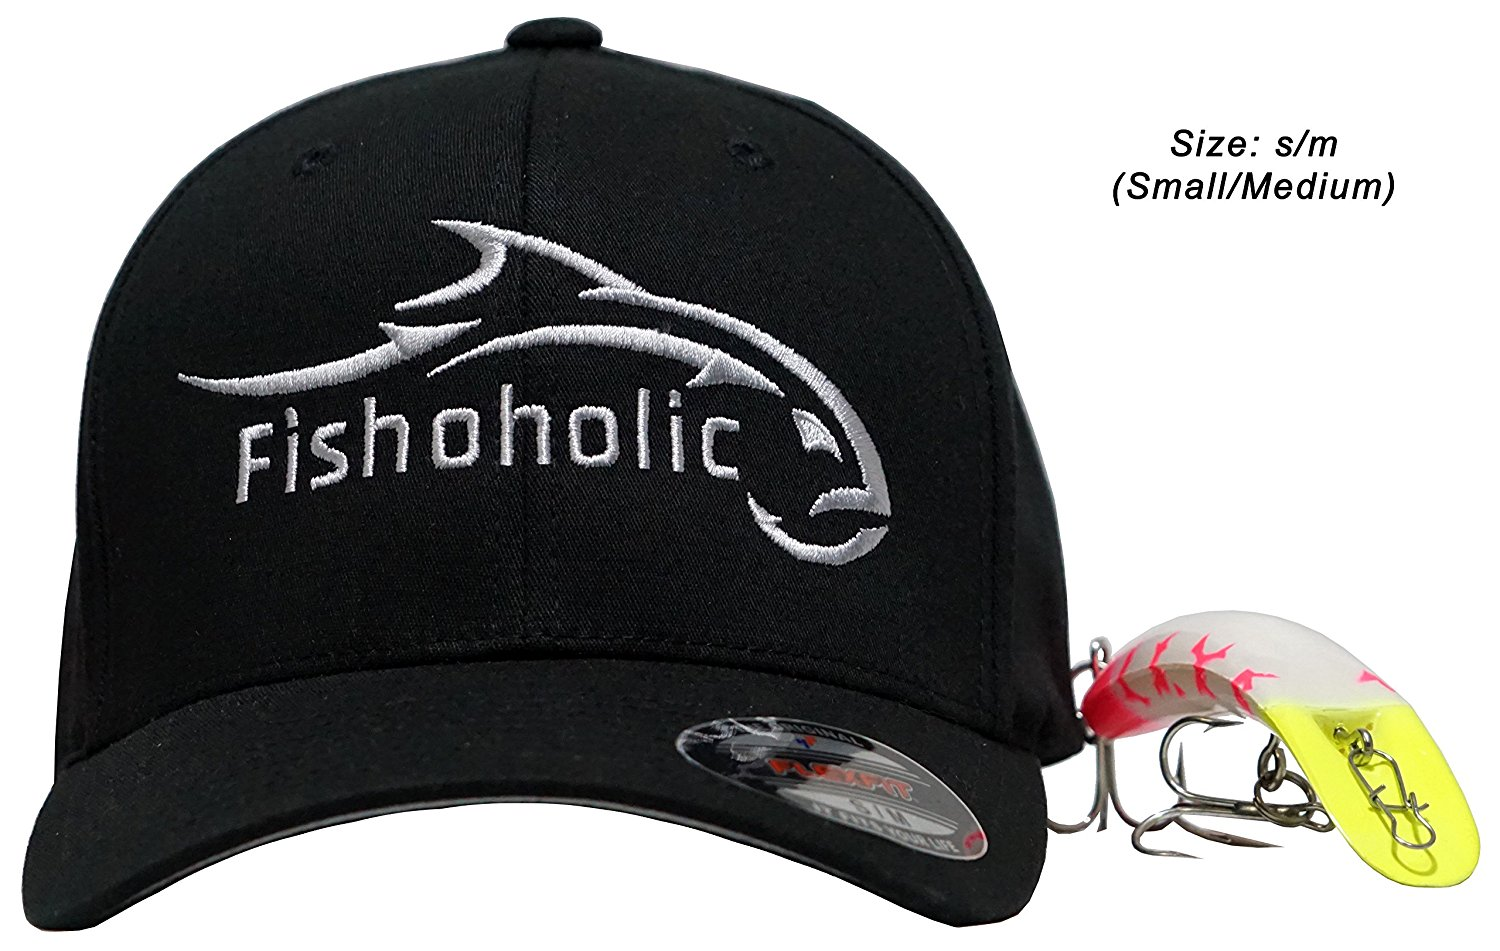 Fishoholic Flexfit Black Baseball Fishing Hat. Fishaholic ALL SILVER Embroidery Front & Back Small/Medium. Great Gift. Free Sticker. USPTO Registered (R) Trademark. (FF-blk-SlvSLVR-S/M)